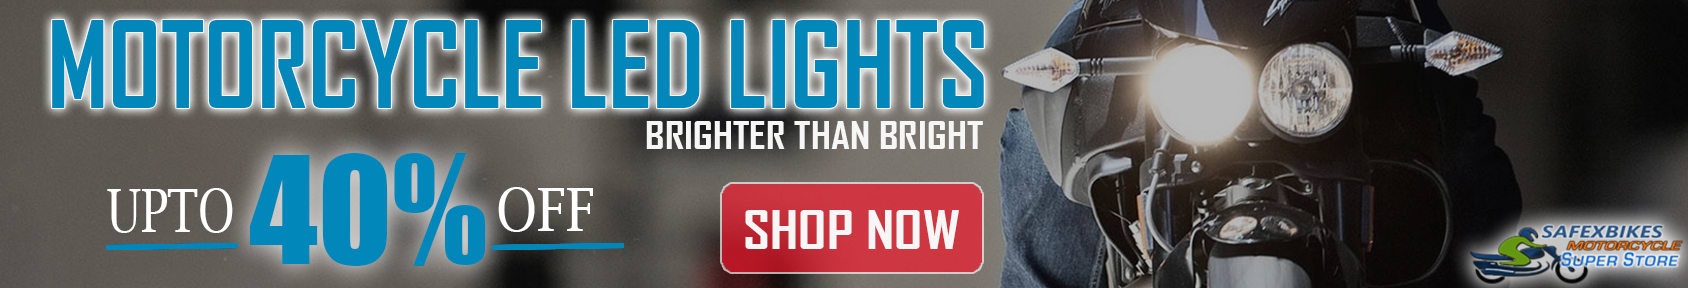 Special offers on Genuine Motorcycle Spare Parts And Accessories - High Discount's On LED lights